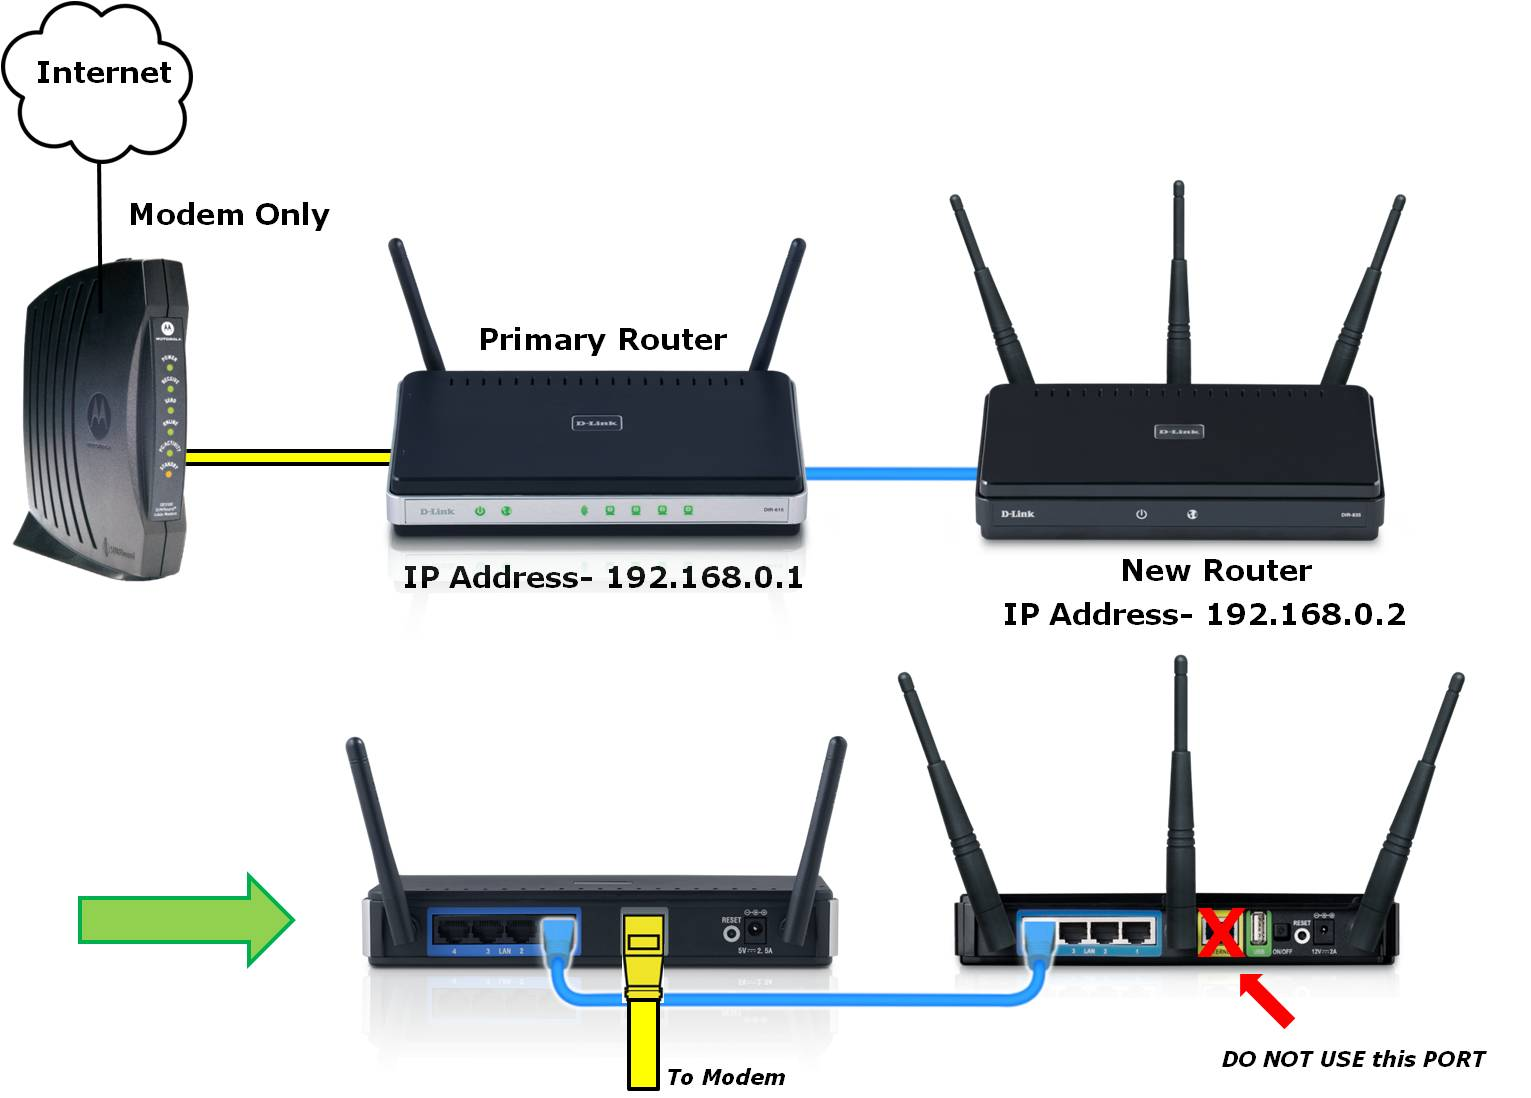 Internet Kabel Verlengen Connect Two Routers To The Same Network Haard Shah